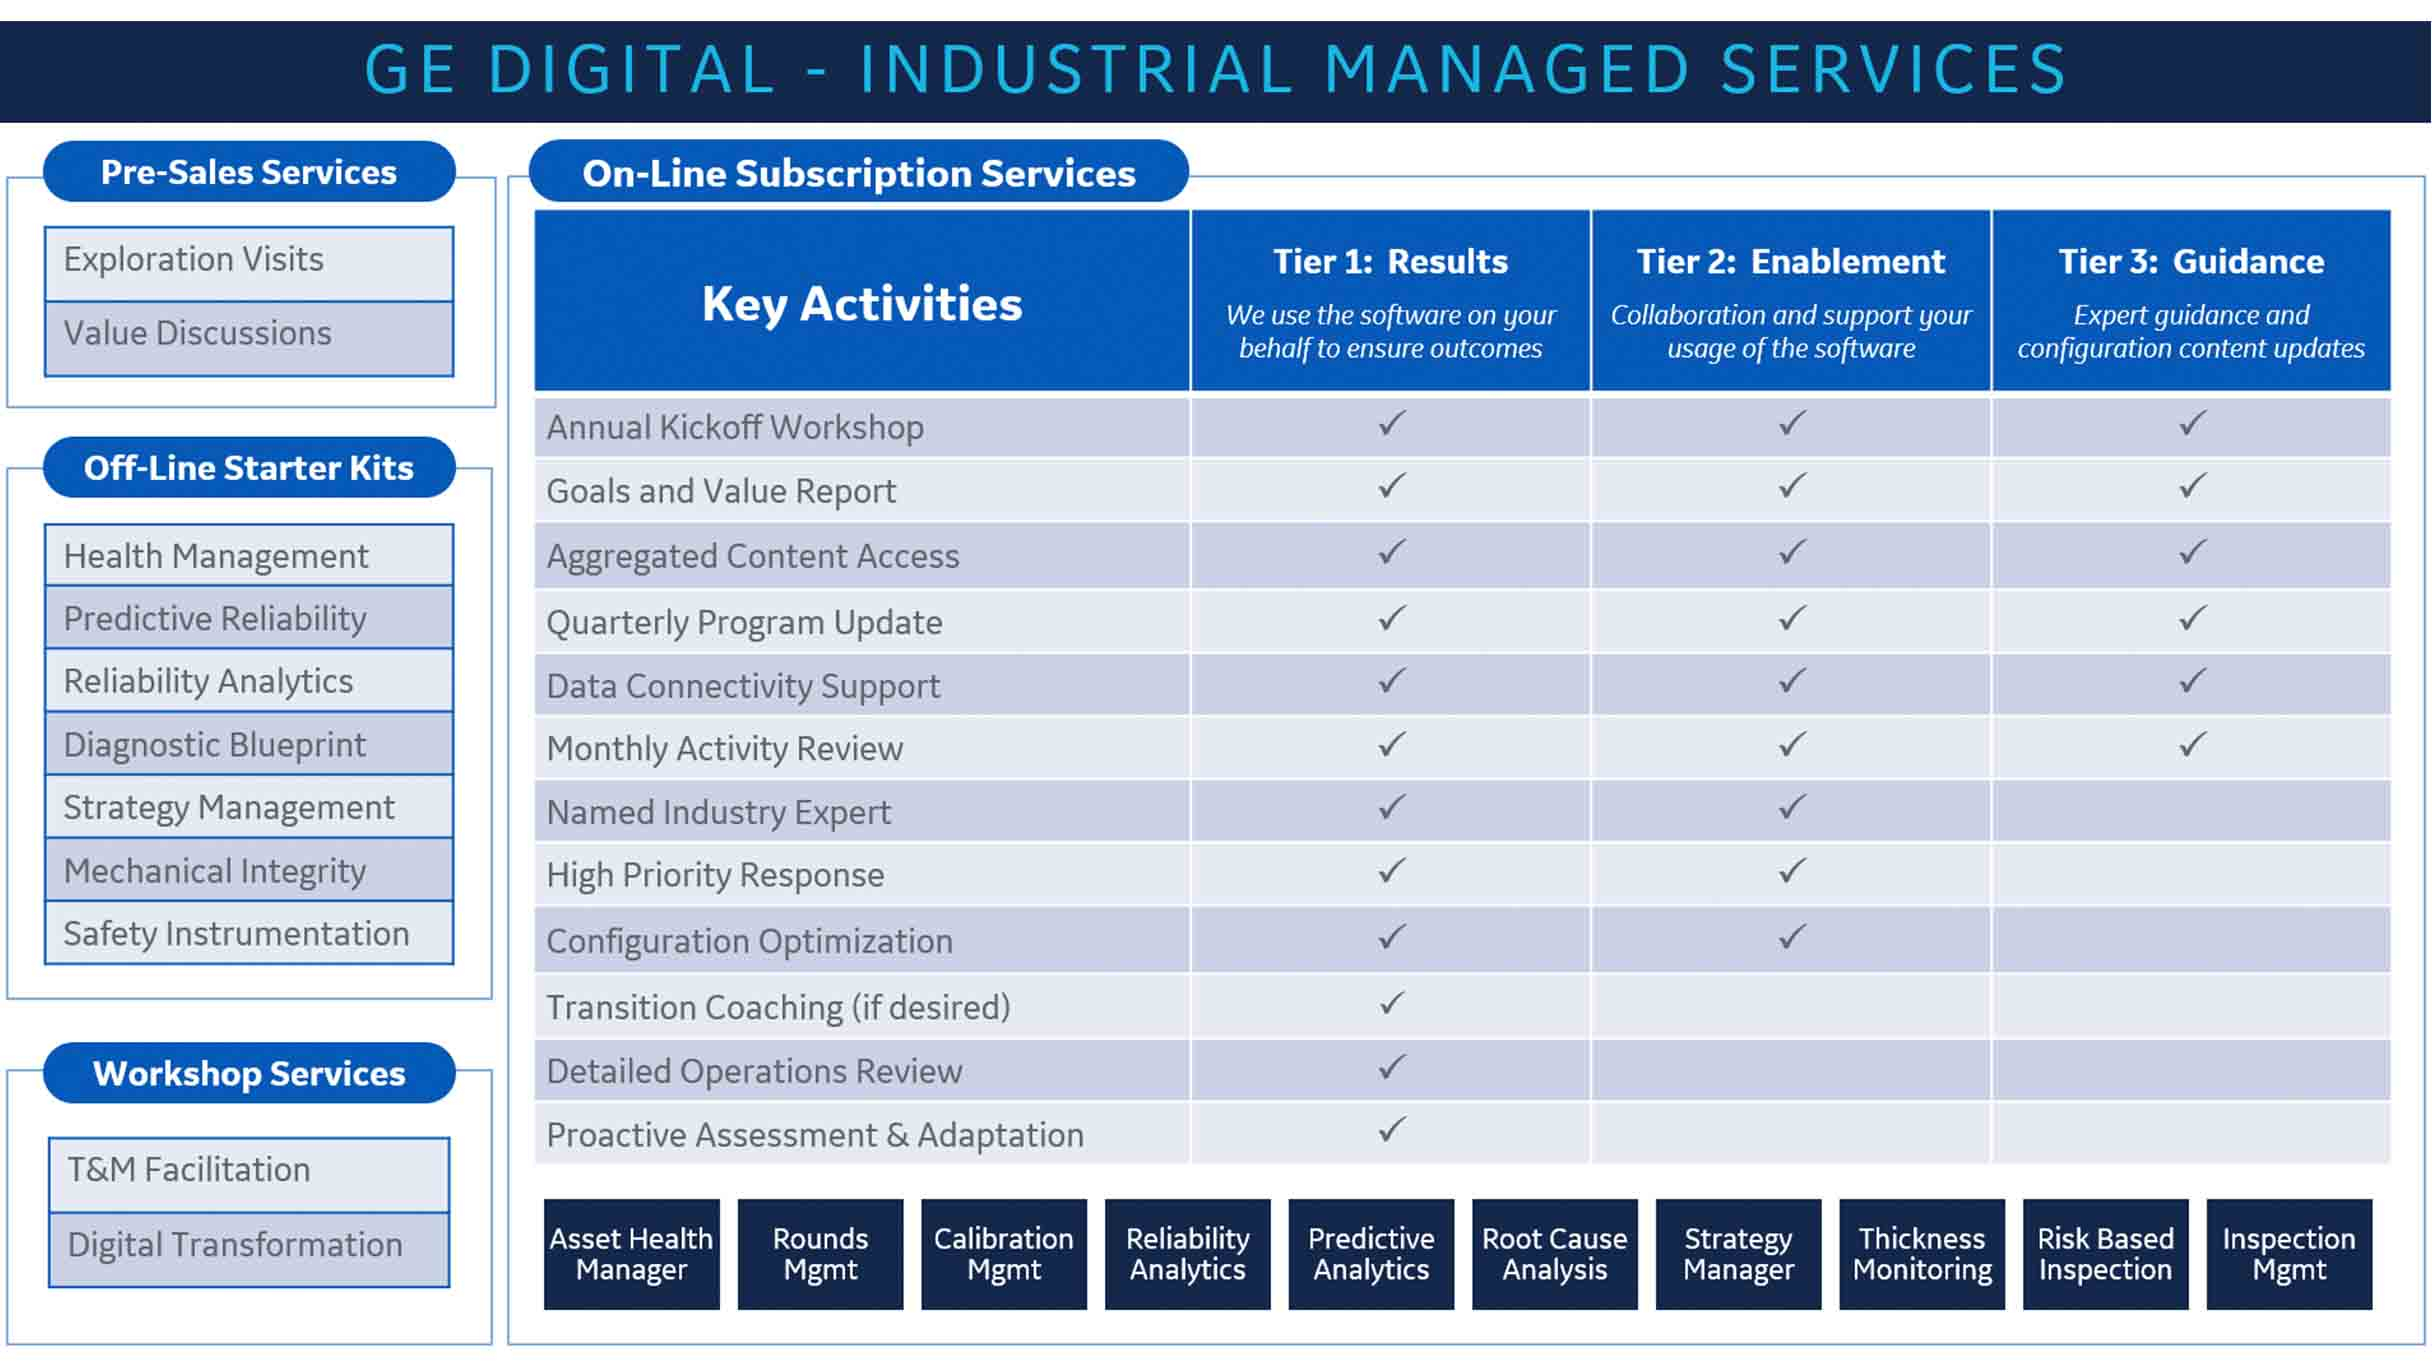 GE Digital's Industrial Managed Service Offerings including Remote Monitoring